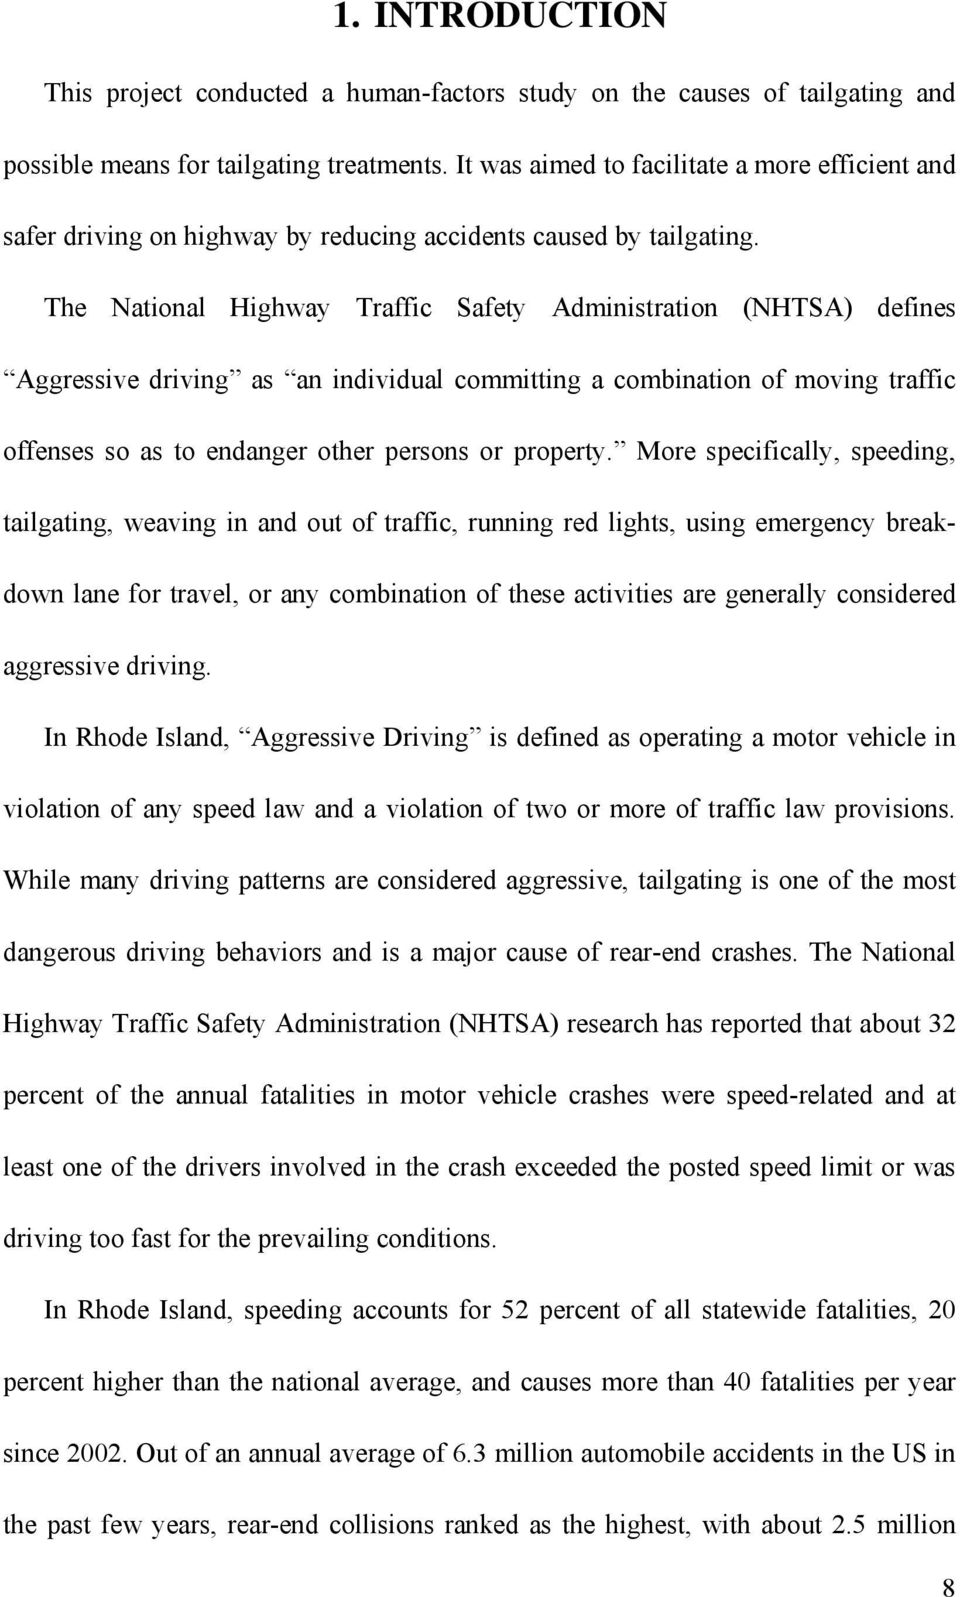 The National Highway Traffic Safety Administration (NHTSA) defines Aggressive driving as an individual committing a combination of moving traffic offenses so as to endanger other persons or property.